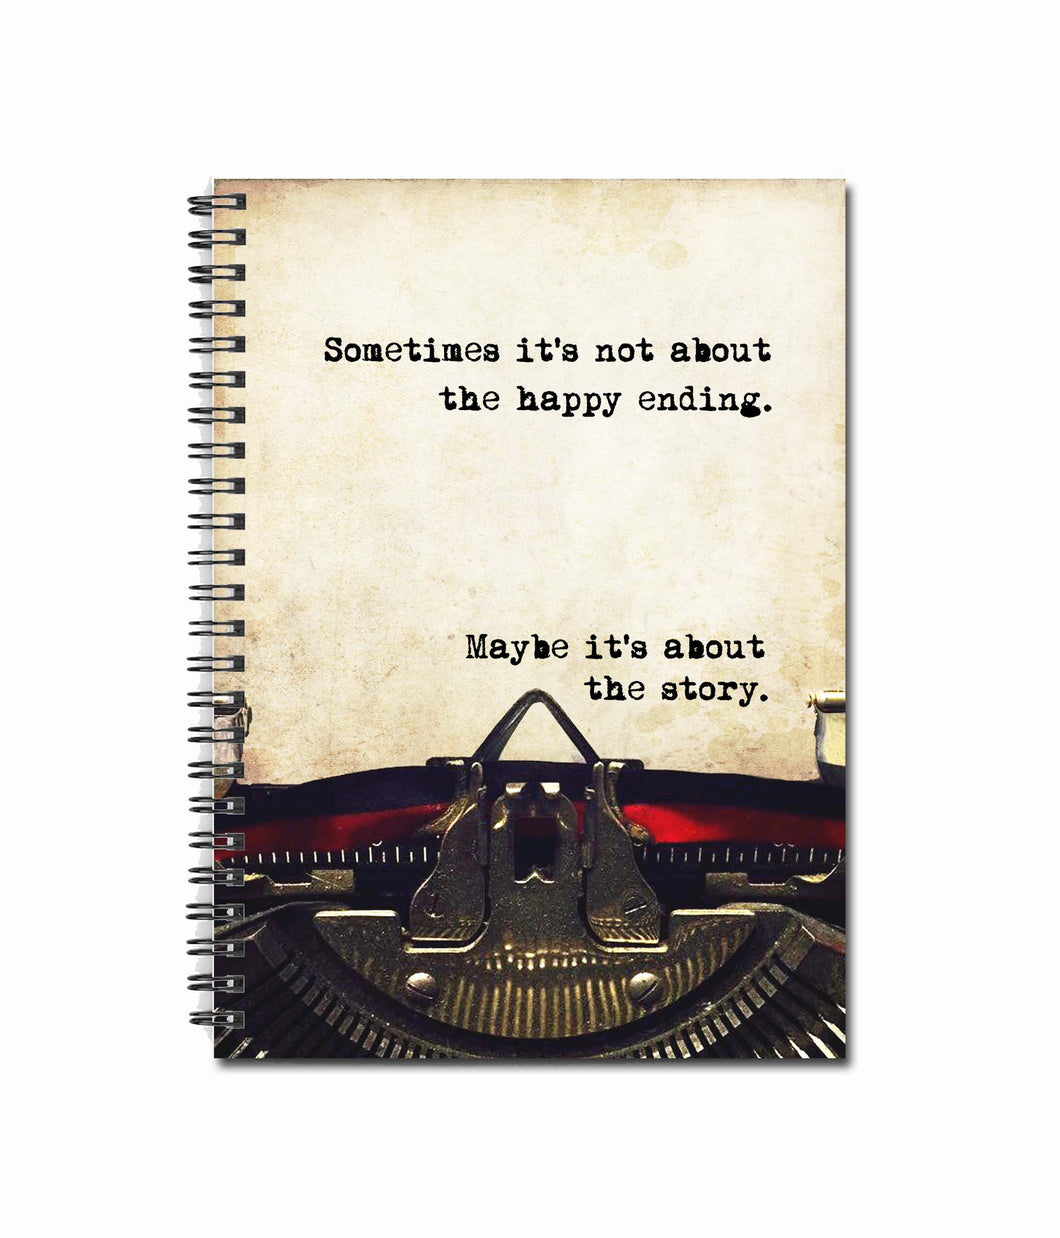 Sometimes it's not about the happy ending. Maybe it's about the story. -  80 Page Note Book